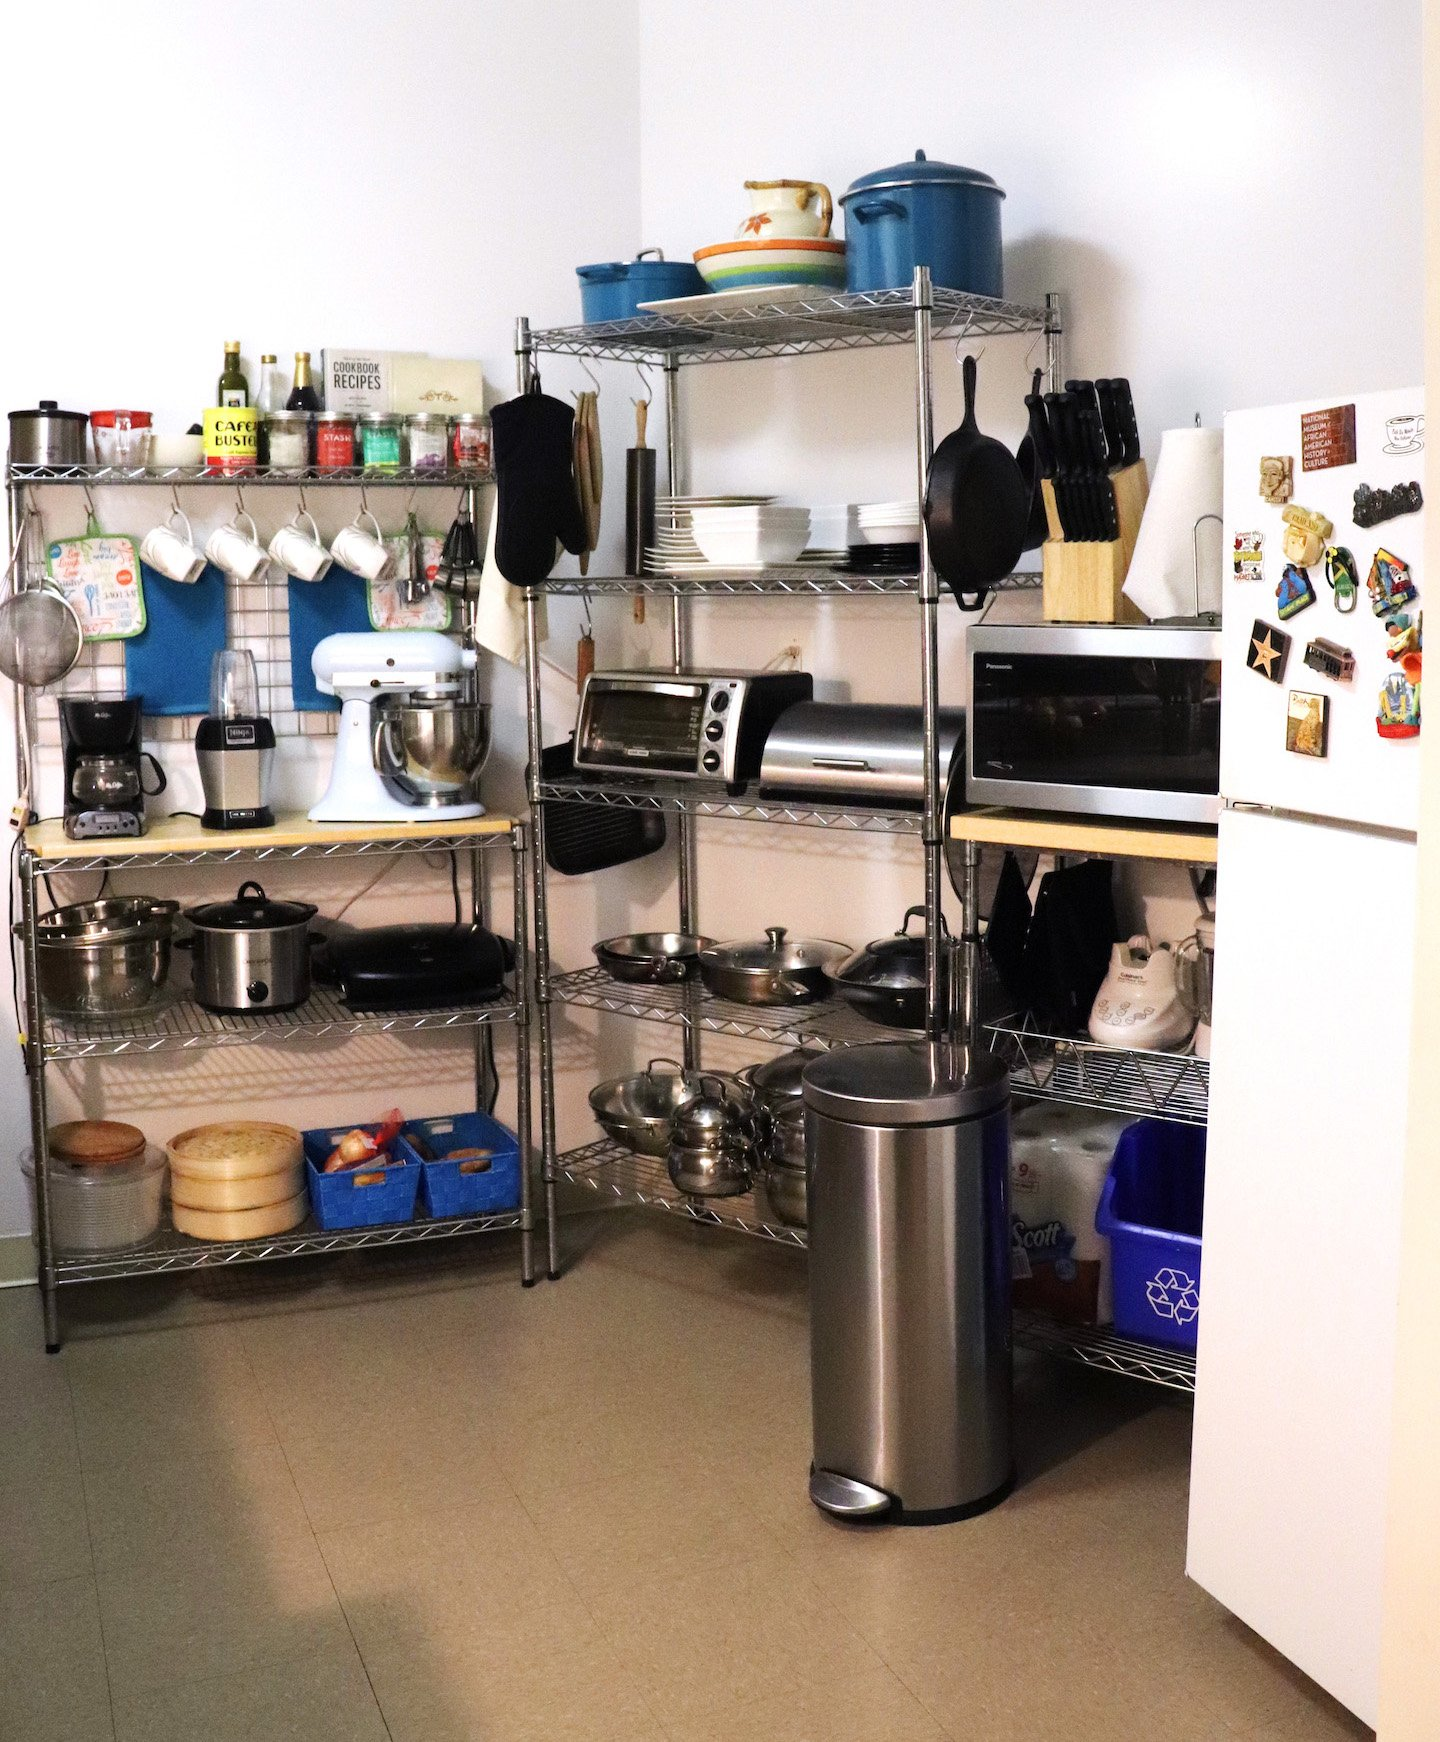 How To Make The Most Of Your Space In A Small Kitchen